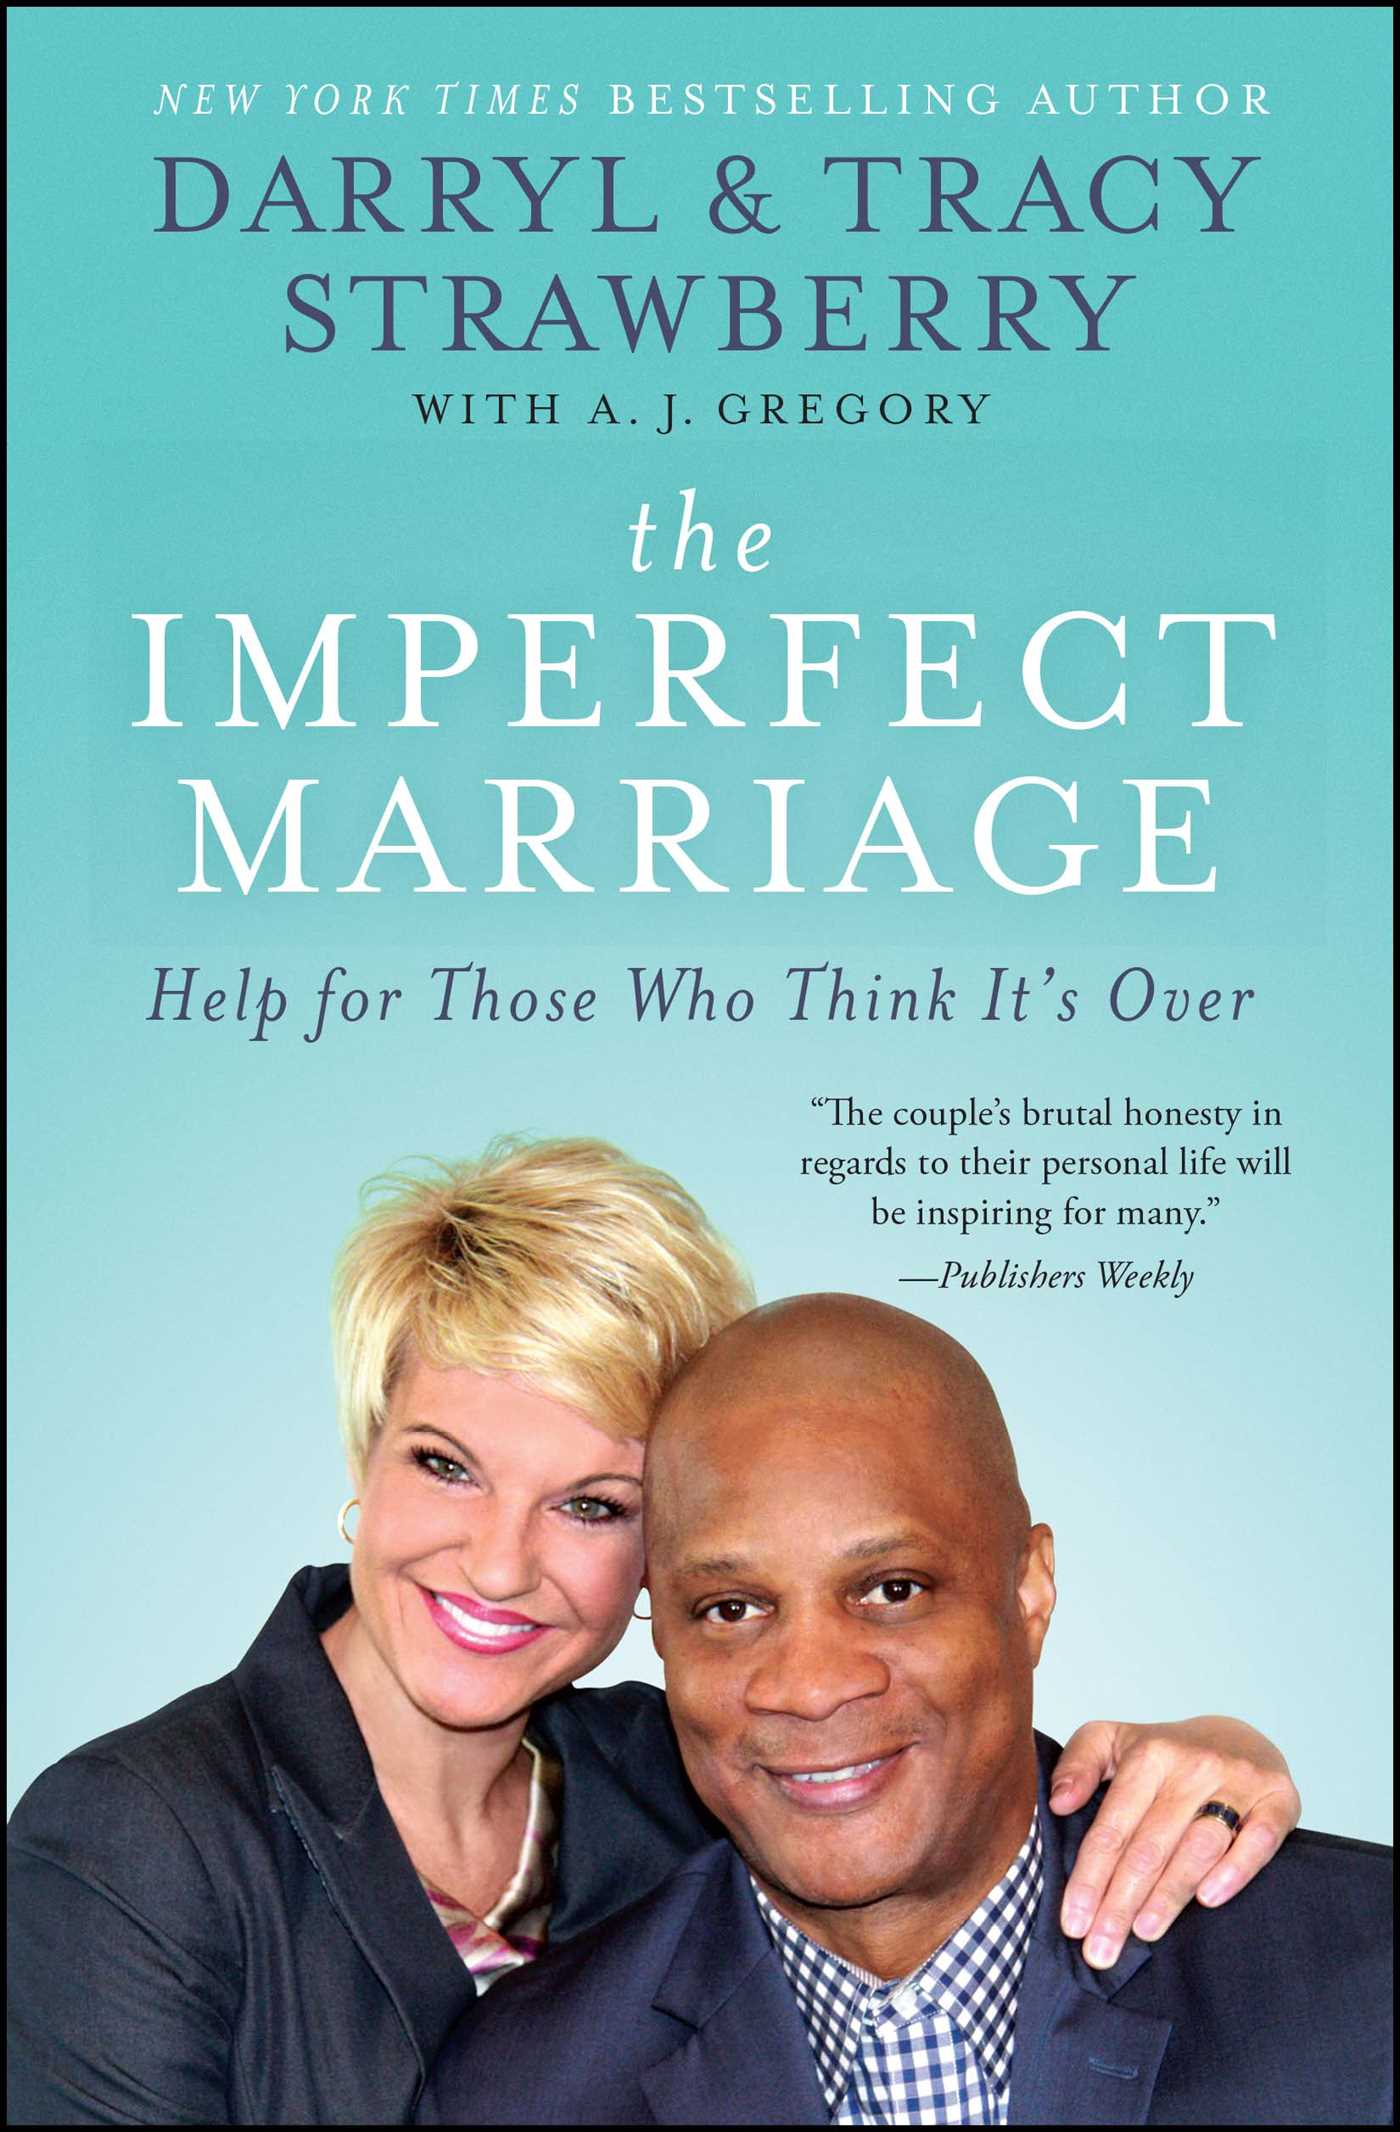 The imperfect marriage 9781476738765 hr